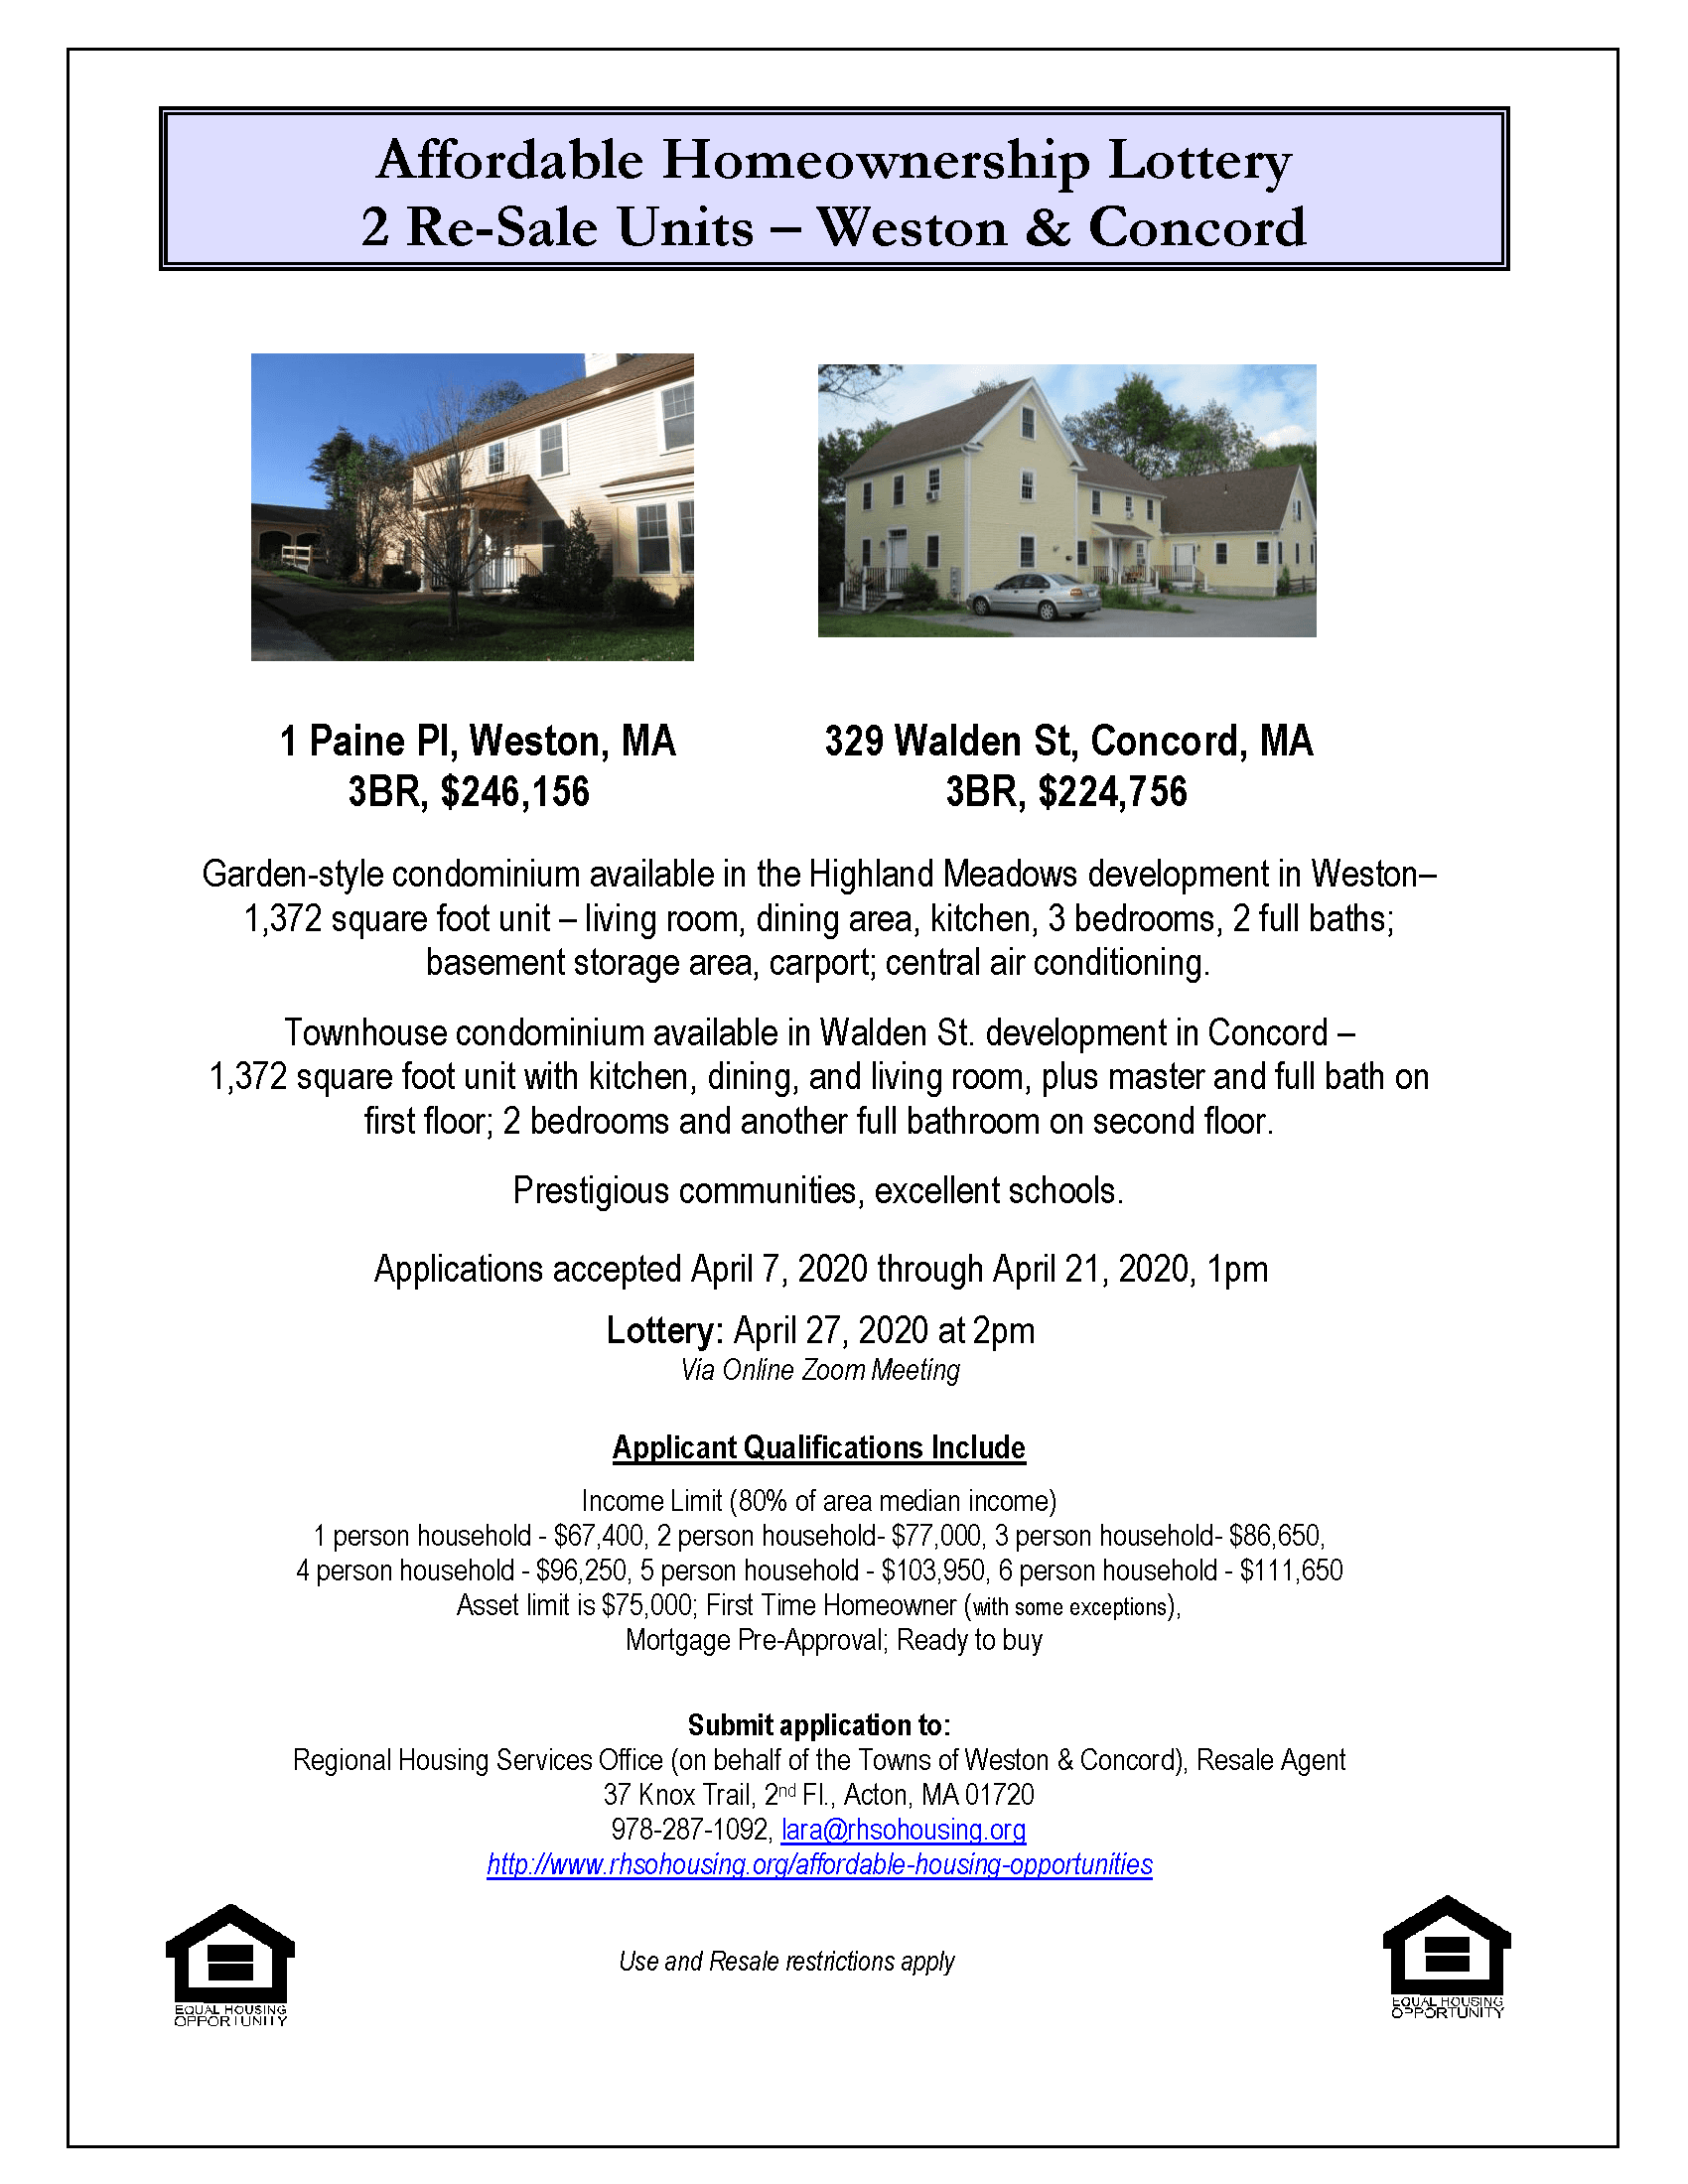 329 Walden St_1 Paine Pl - combined lottery Housing Flyer